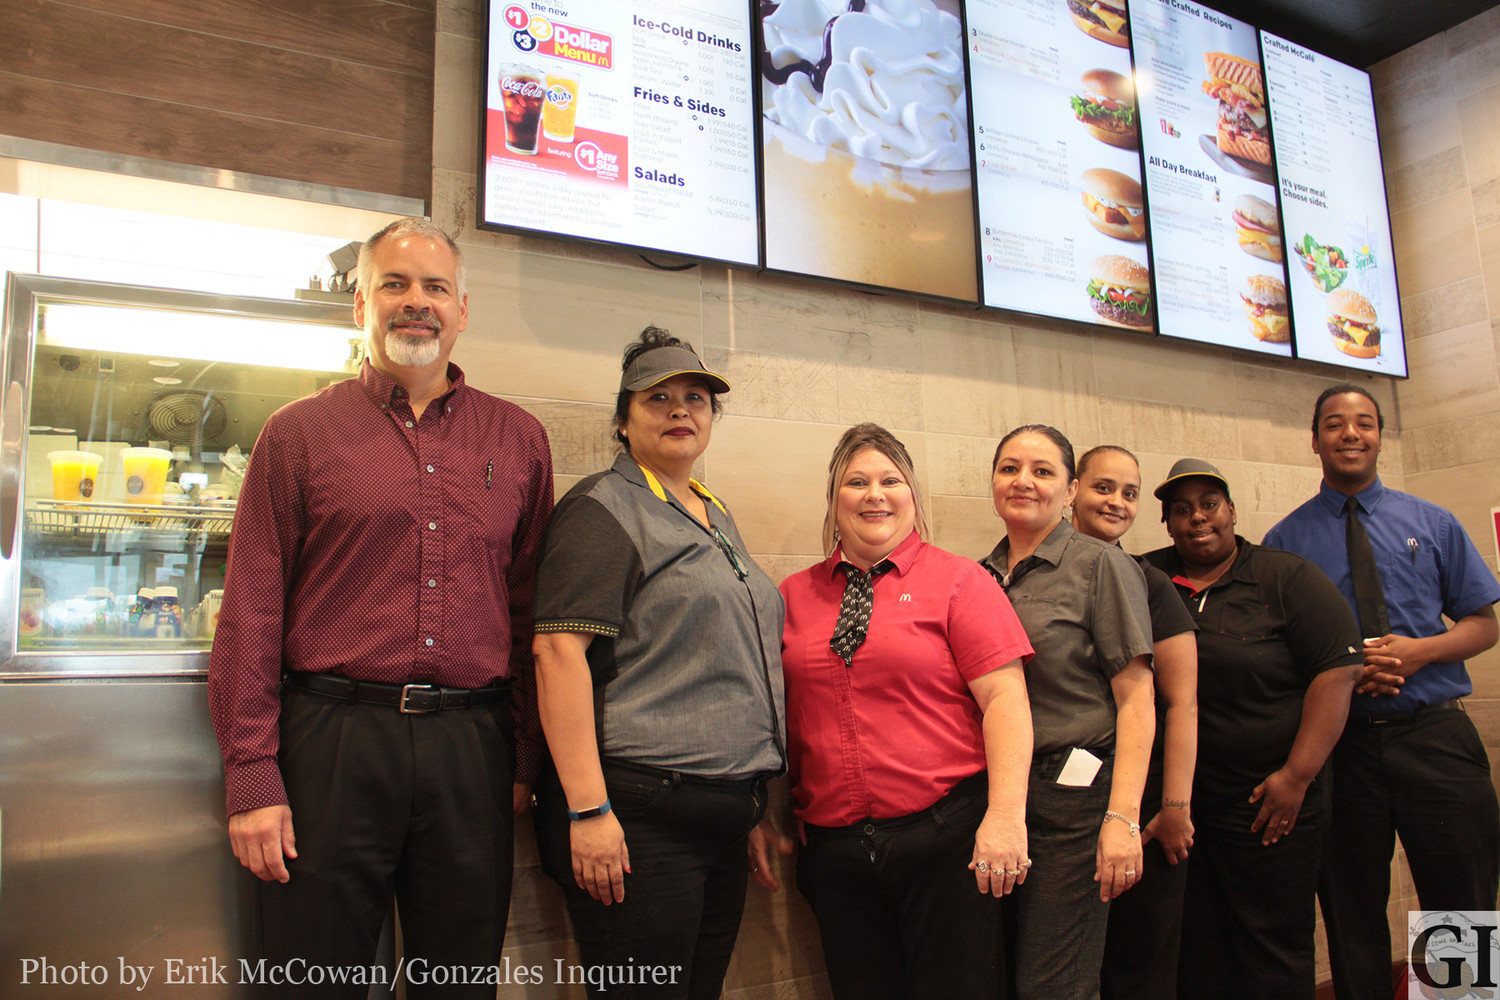 Store owner Robert Wezeman, far left, and his crew are guiding the Gonzales McDonald's into uncharted territory with a new system that offers customer convenience and more menu choices than ever.